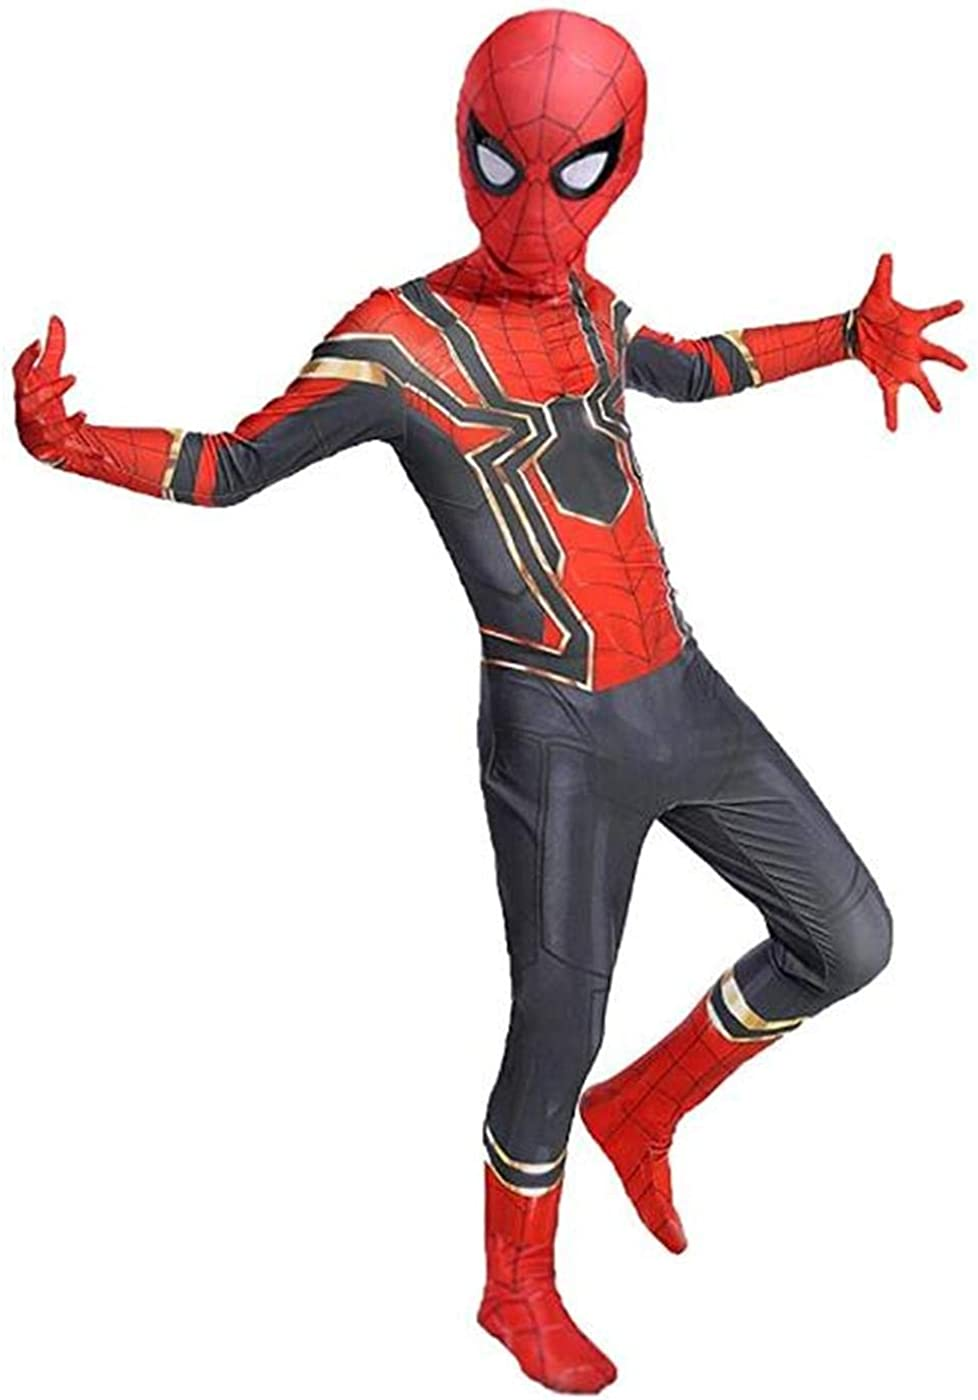 Lianhua Cos Toddler Iron Spider Jumpsuit Bodysuit Lycra Spandex Halloween Cosplay Costumes